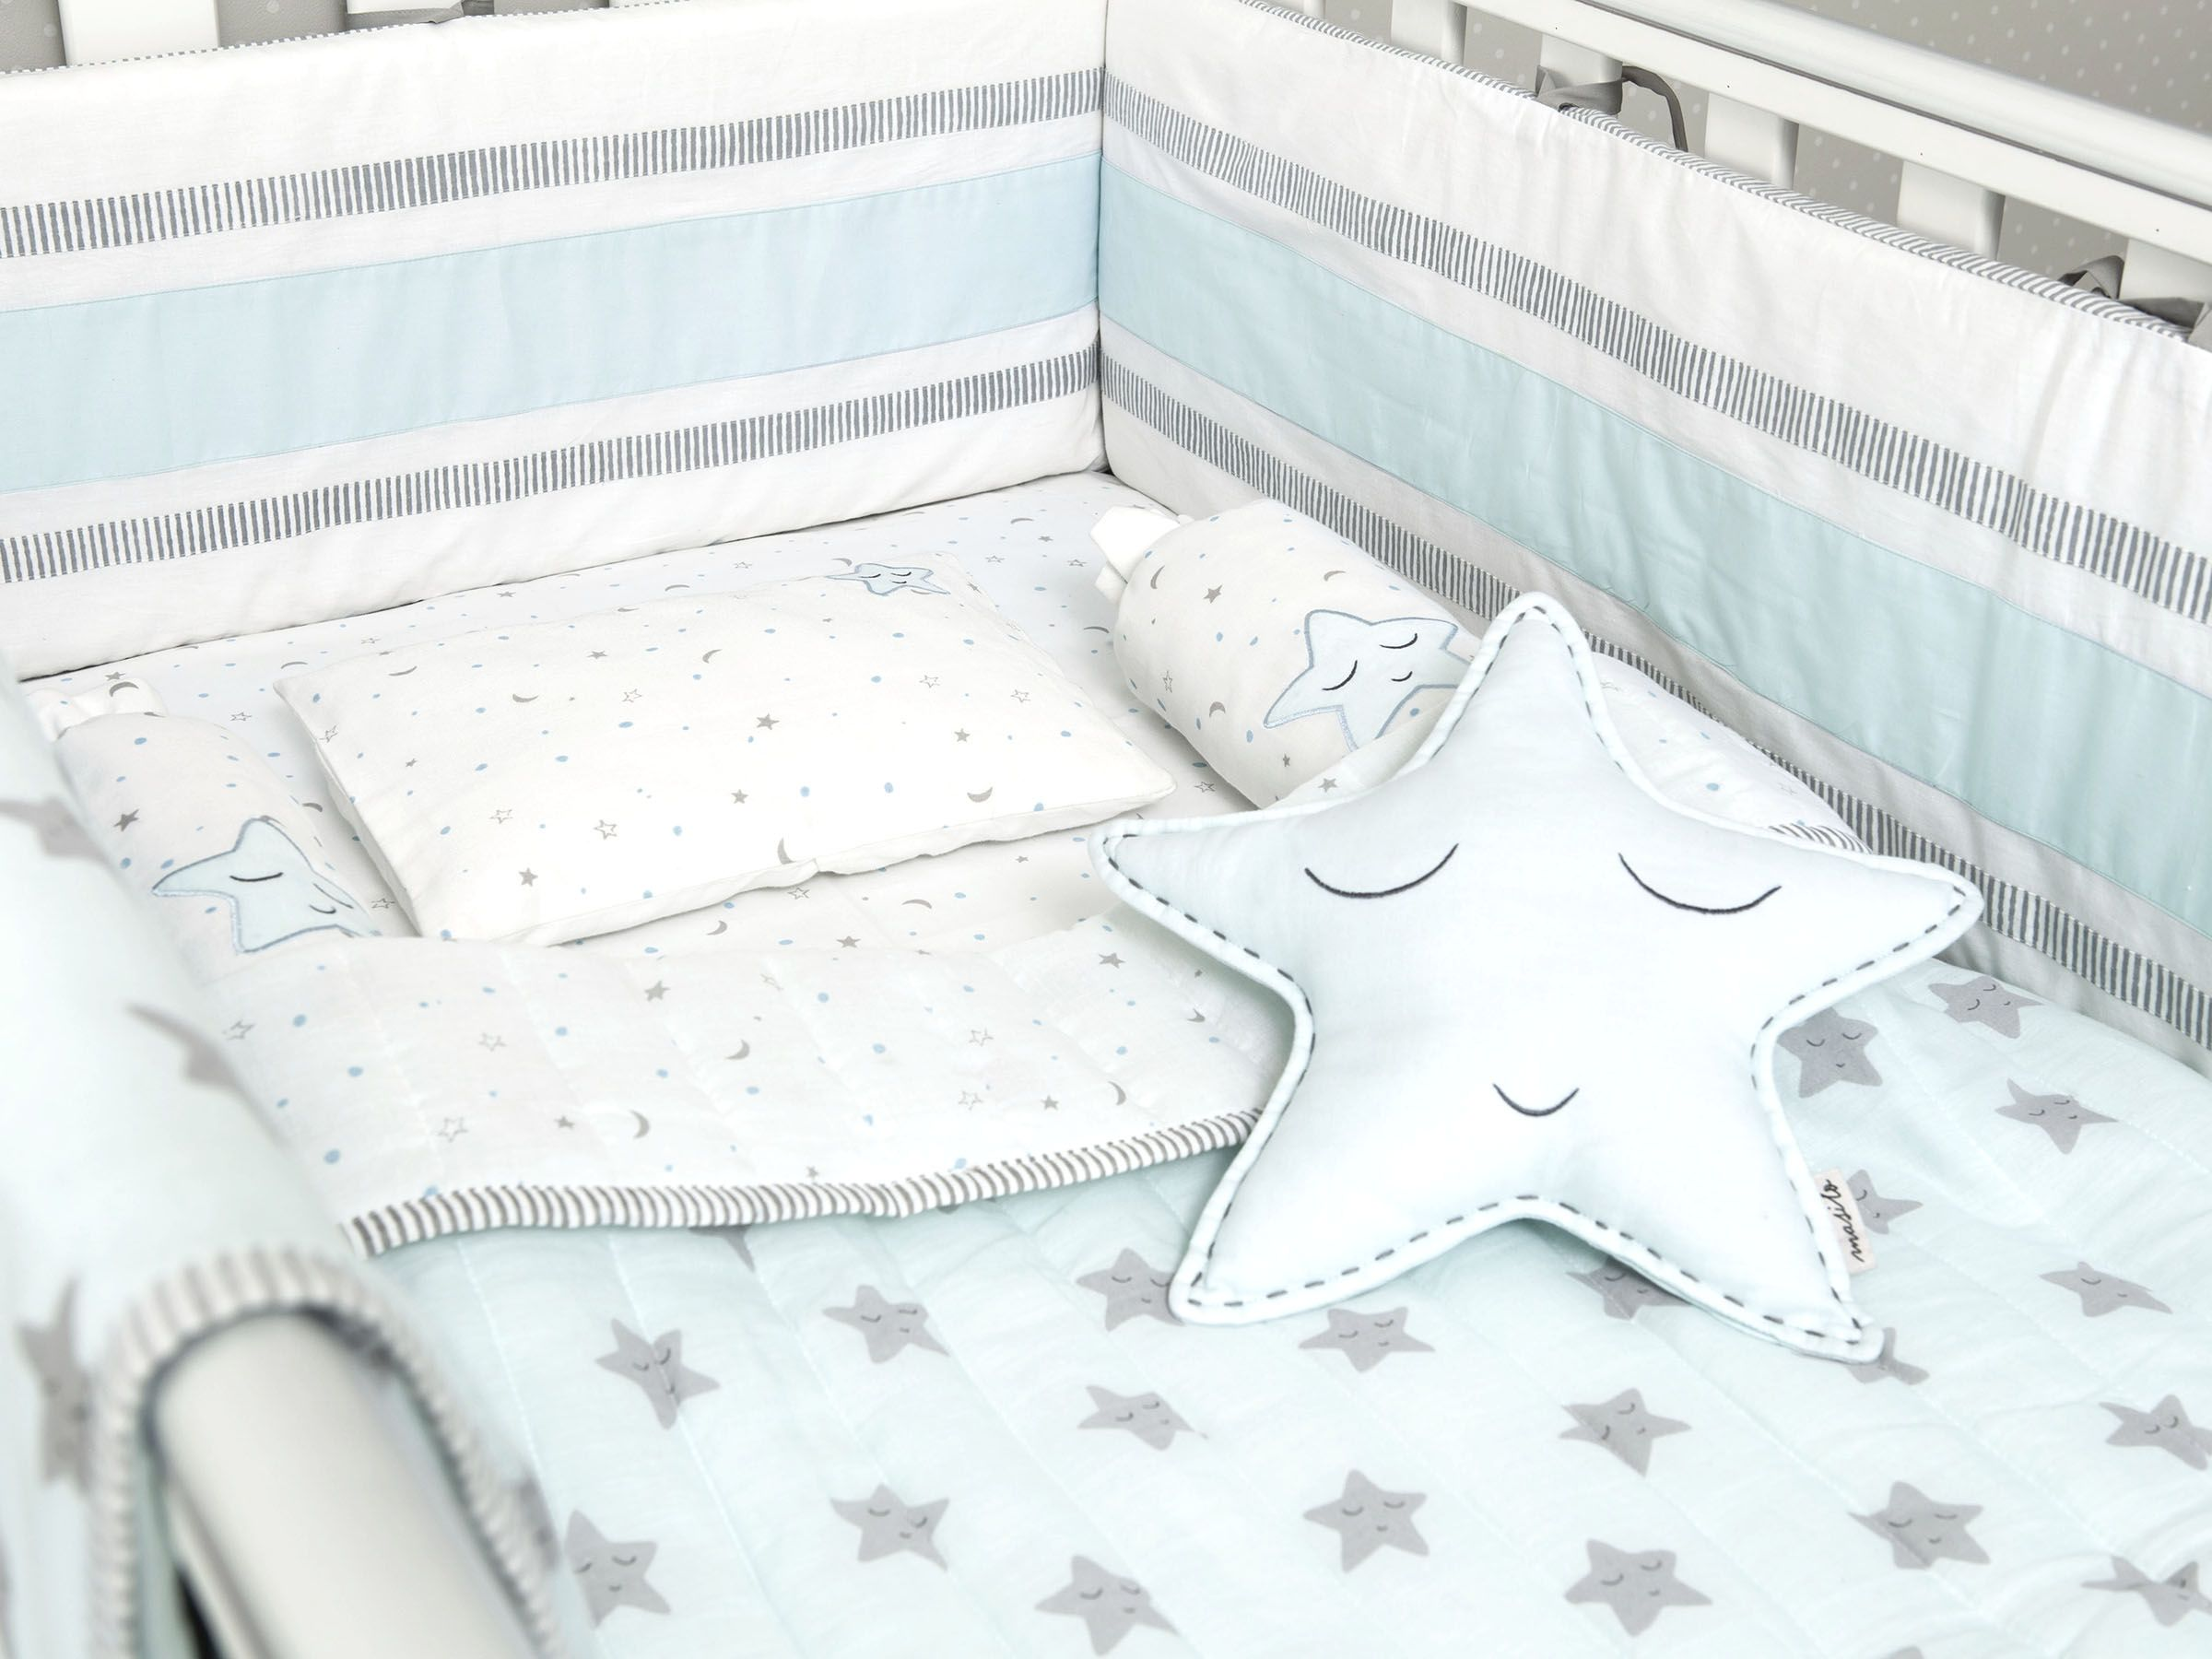 Best crib sheets for baby - Sleepy Star Organic Crib Bedding Set Baby Bedding Set Baby Blanket Baby